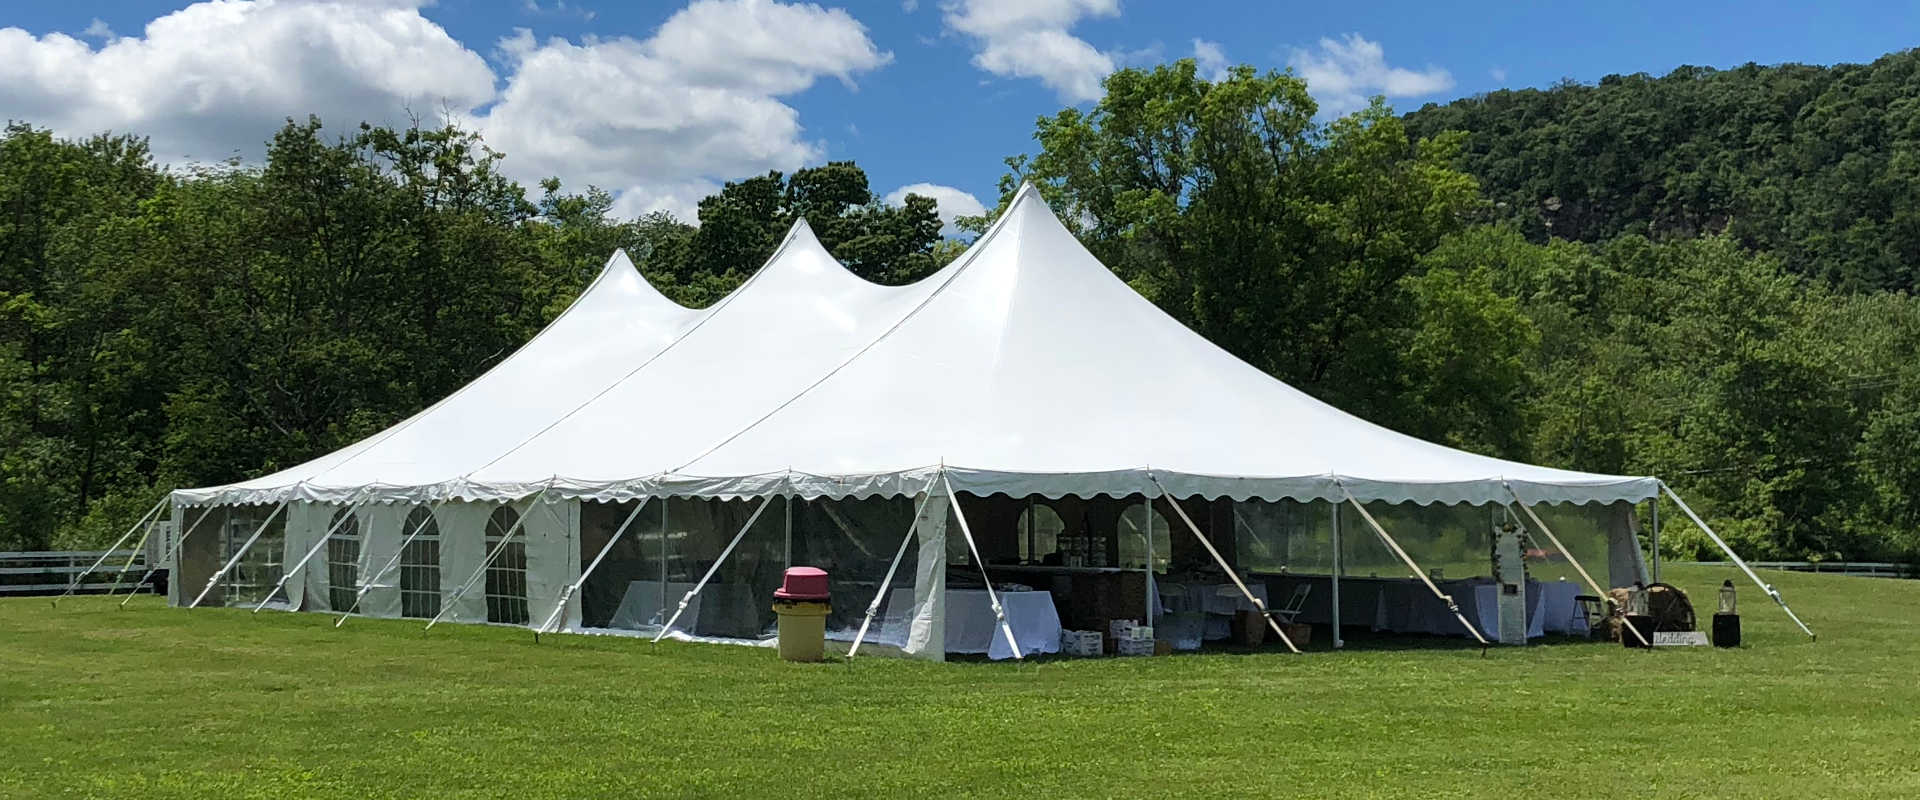 Party Rentals in Western New Jersey and Eastern Pennsylvania